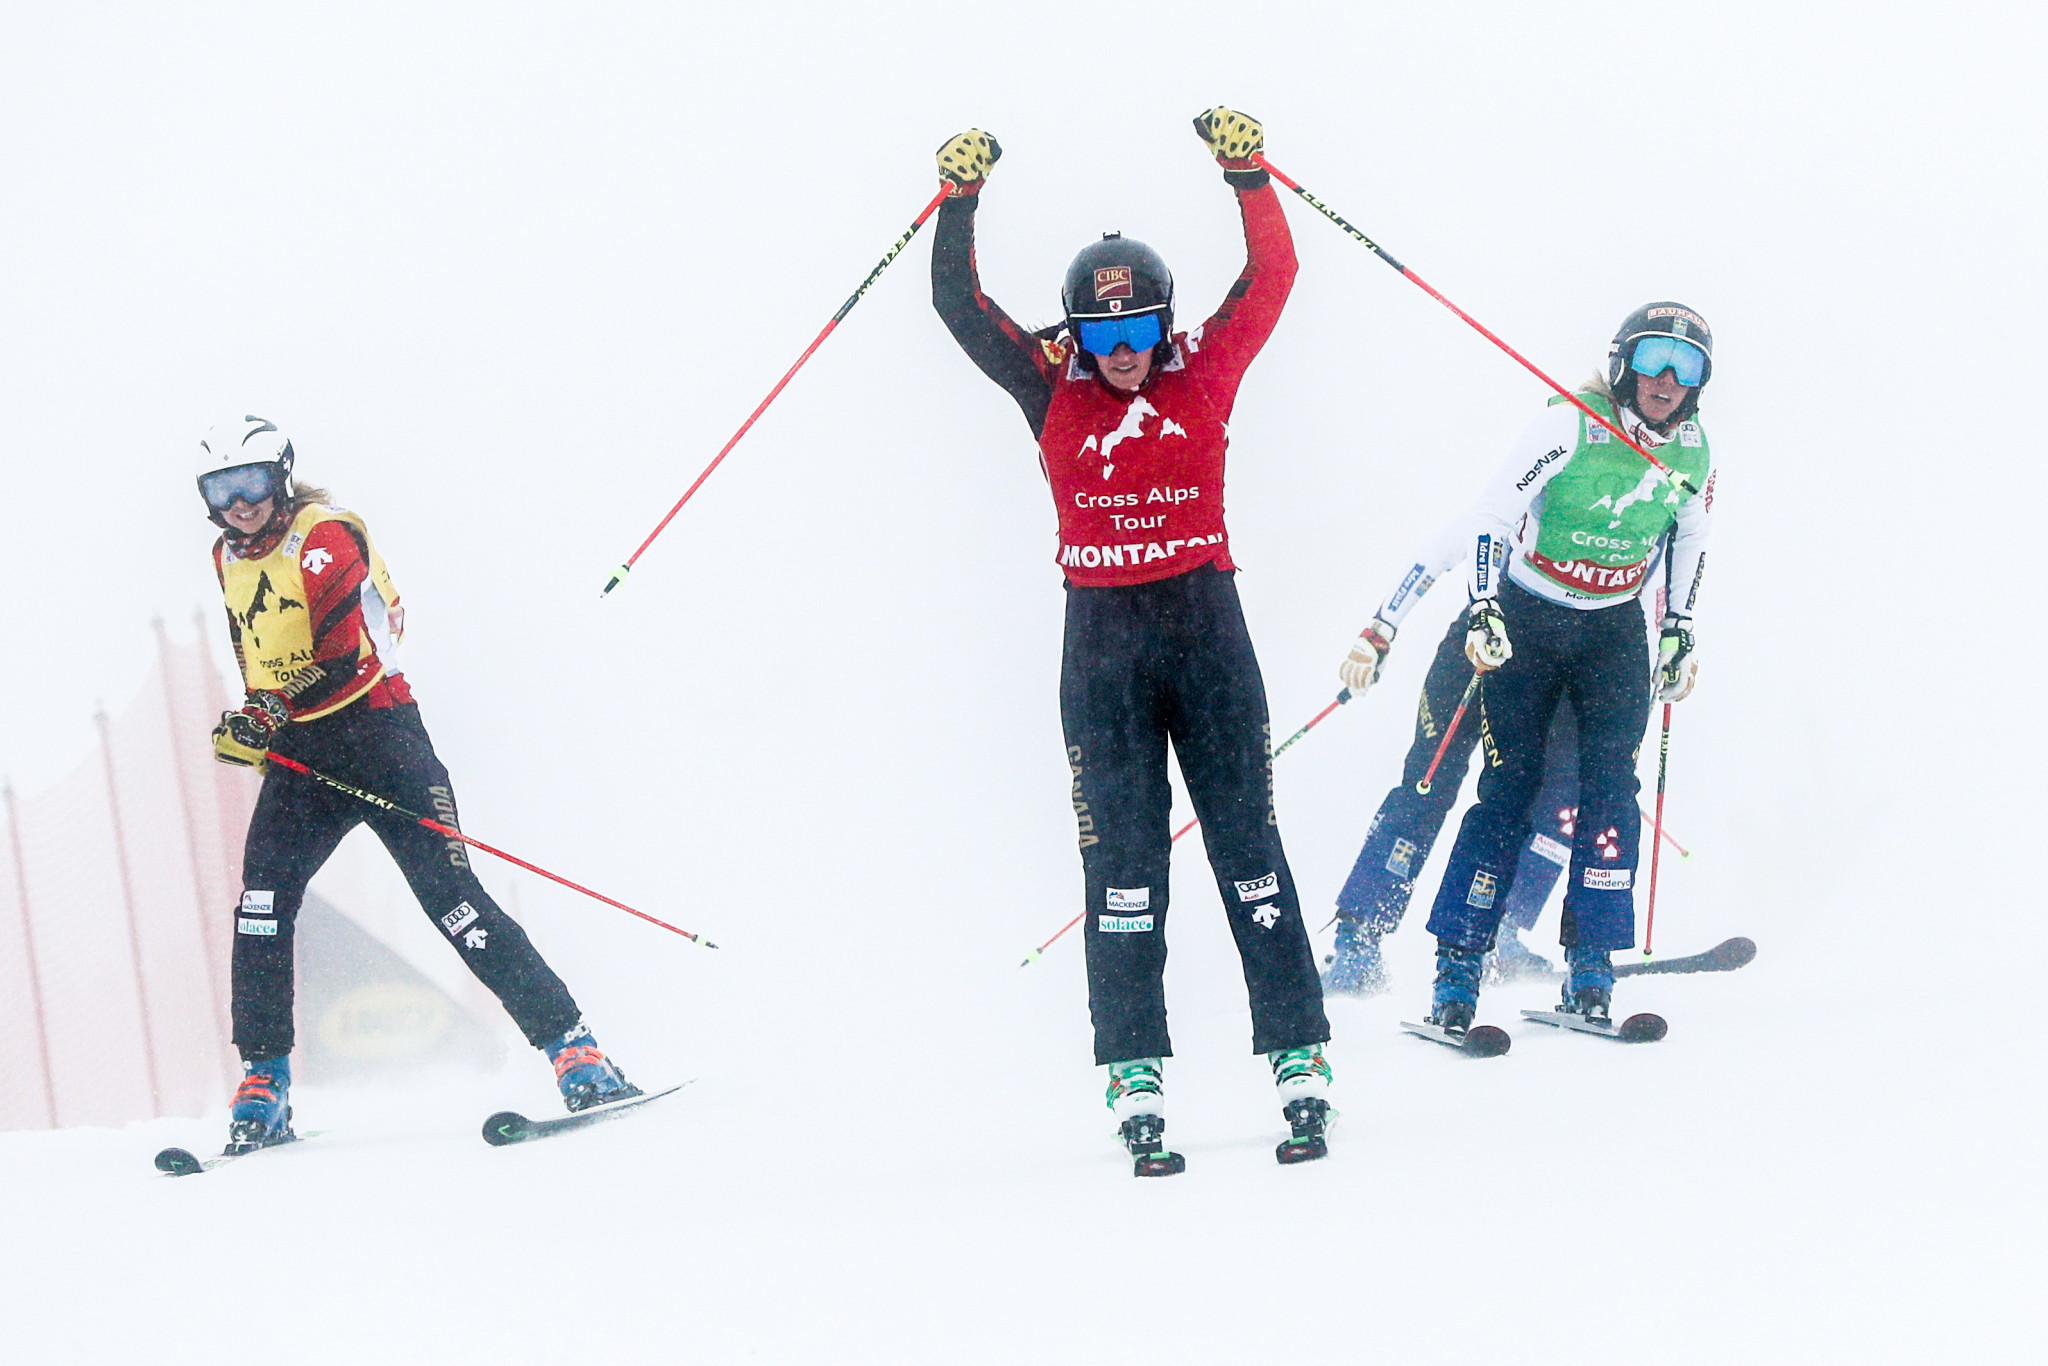 Thompson records second straight win at FIS Ski Cross World Cup